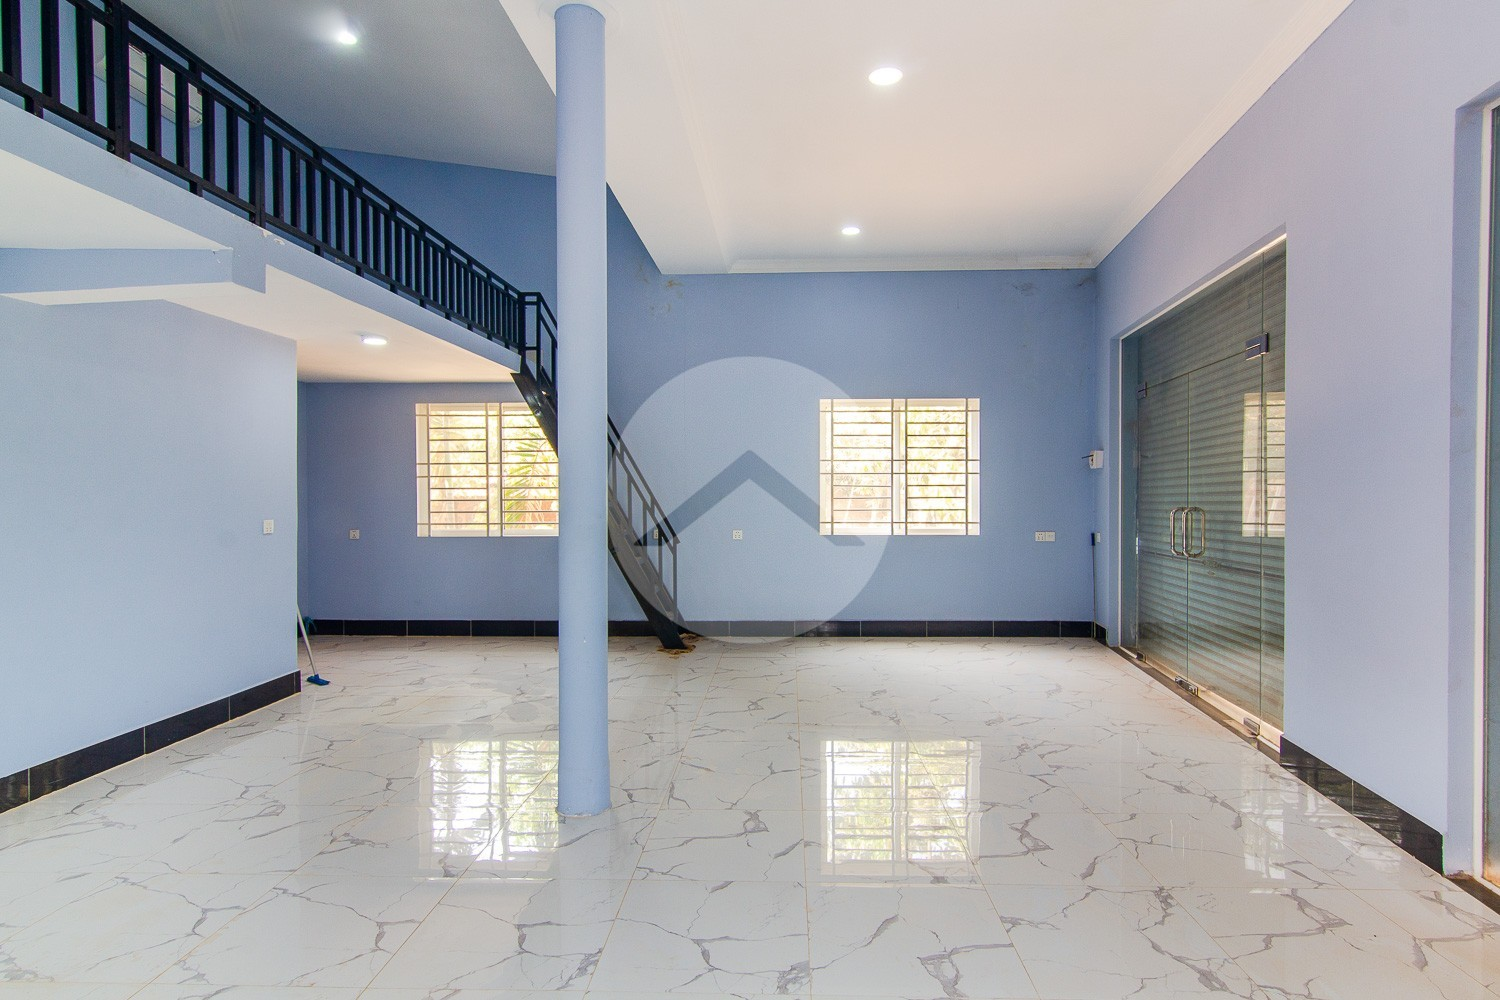 64 Sqm Commercial Space With Mezzanine For Rent - Sala Kamreuk, Siem Reap